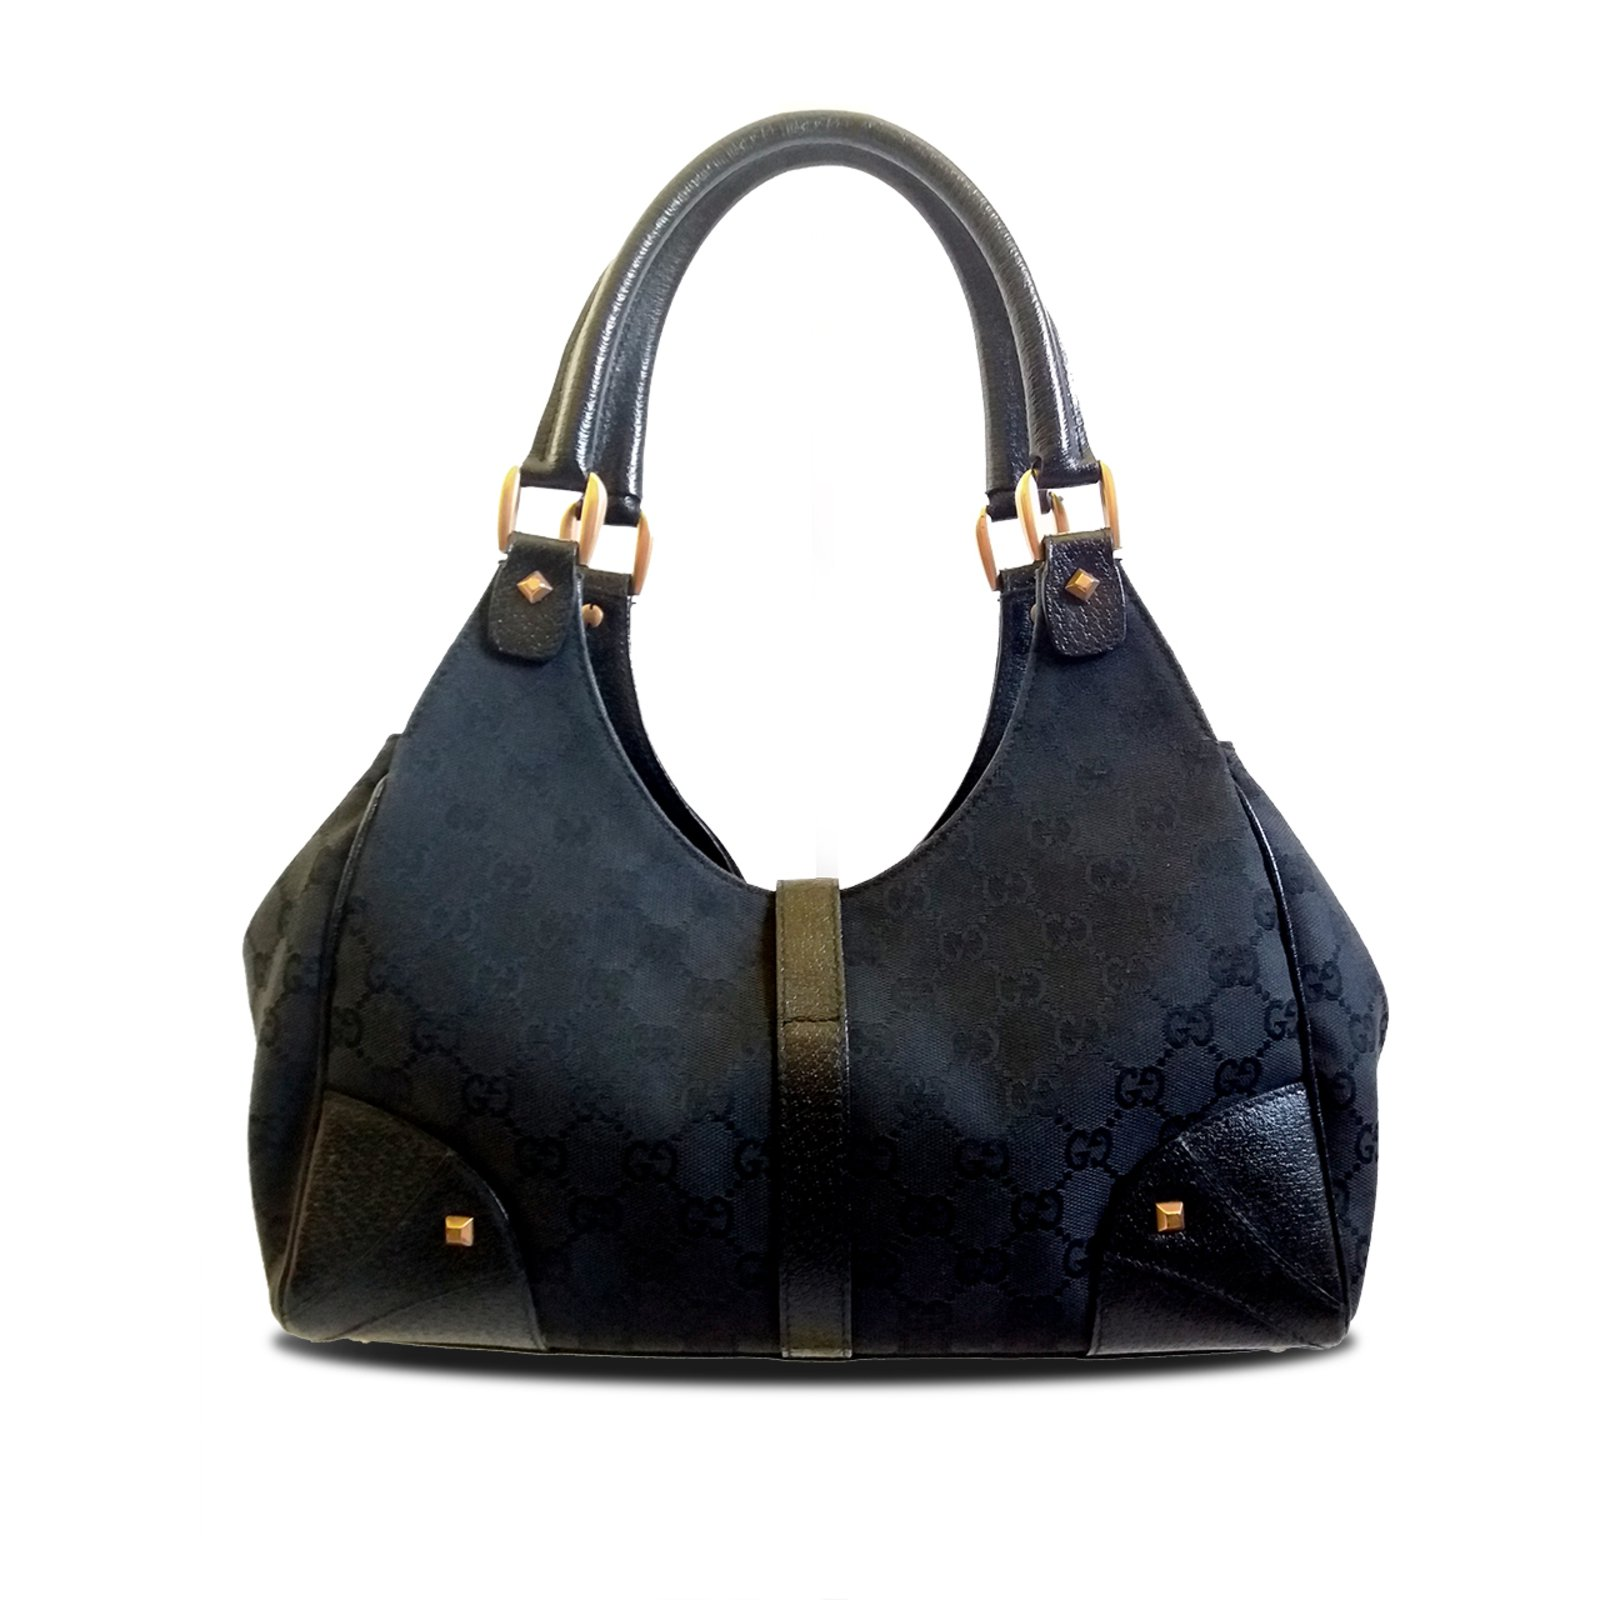 6bb2ecd19f2e Gucci Gucci Bardot Hobo Handbags Leather,Cloth Black ref.38012 ...